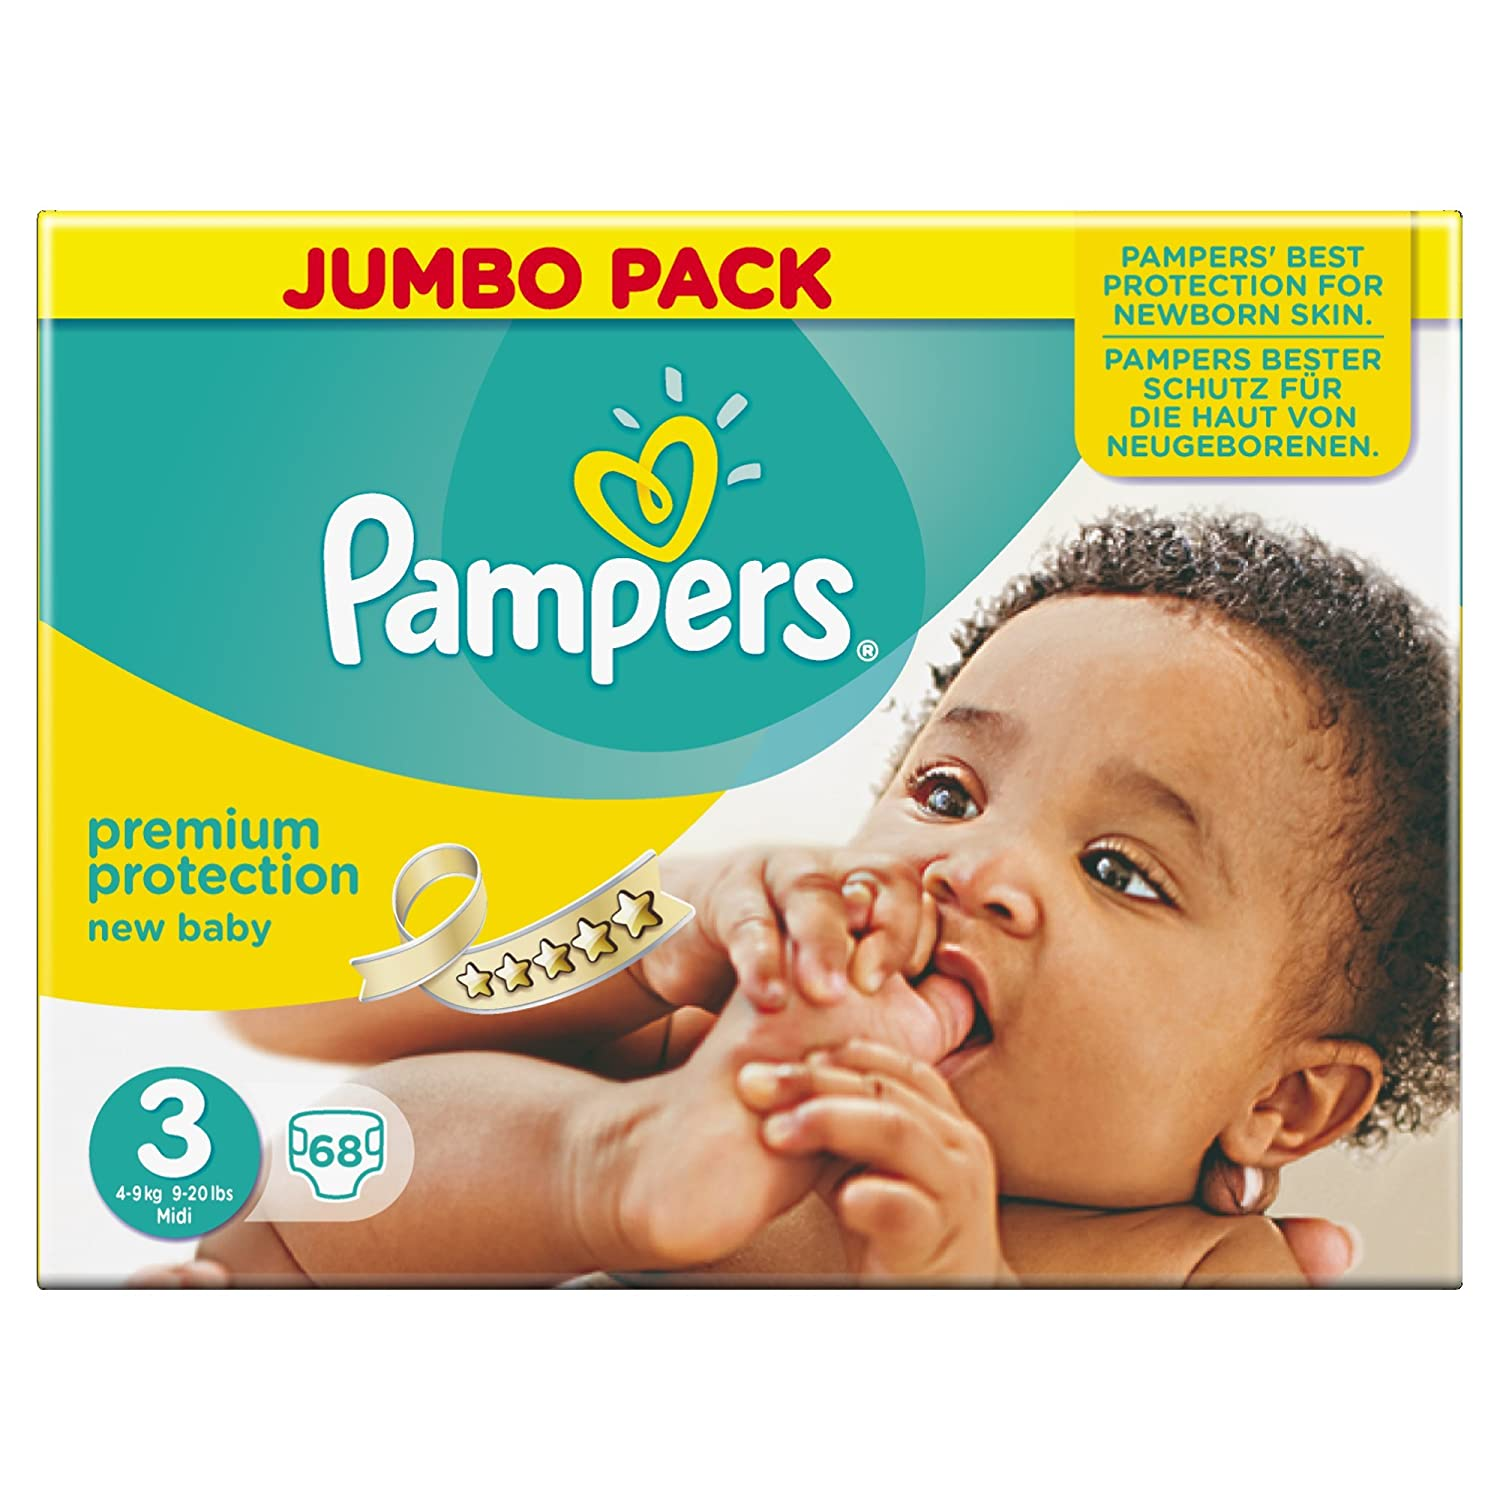 Ancienne version - Pampers New Baby Nouveau-Né ( 2-5 kg / 4-11 Lbs) , 45 Couches Taille 1 Géant - Lot de 3 (135 couches) 8393779